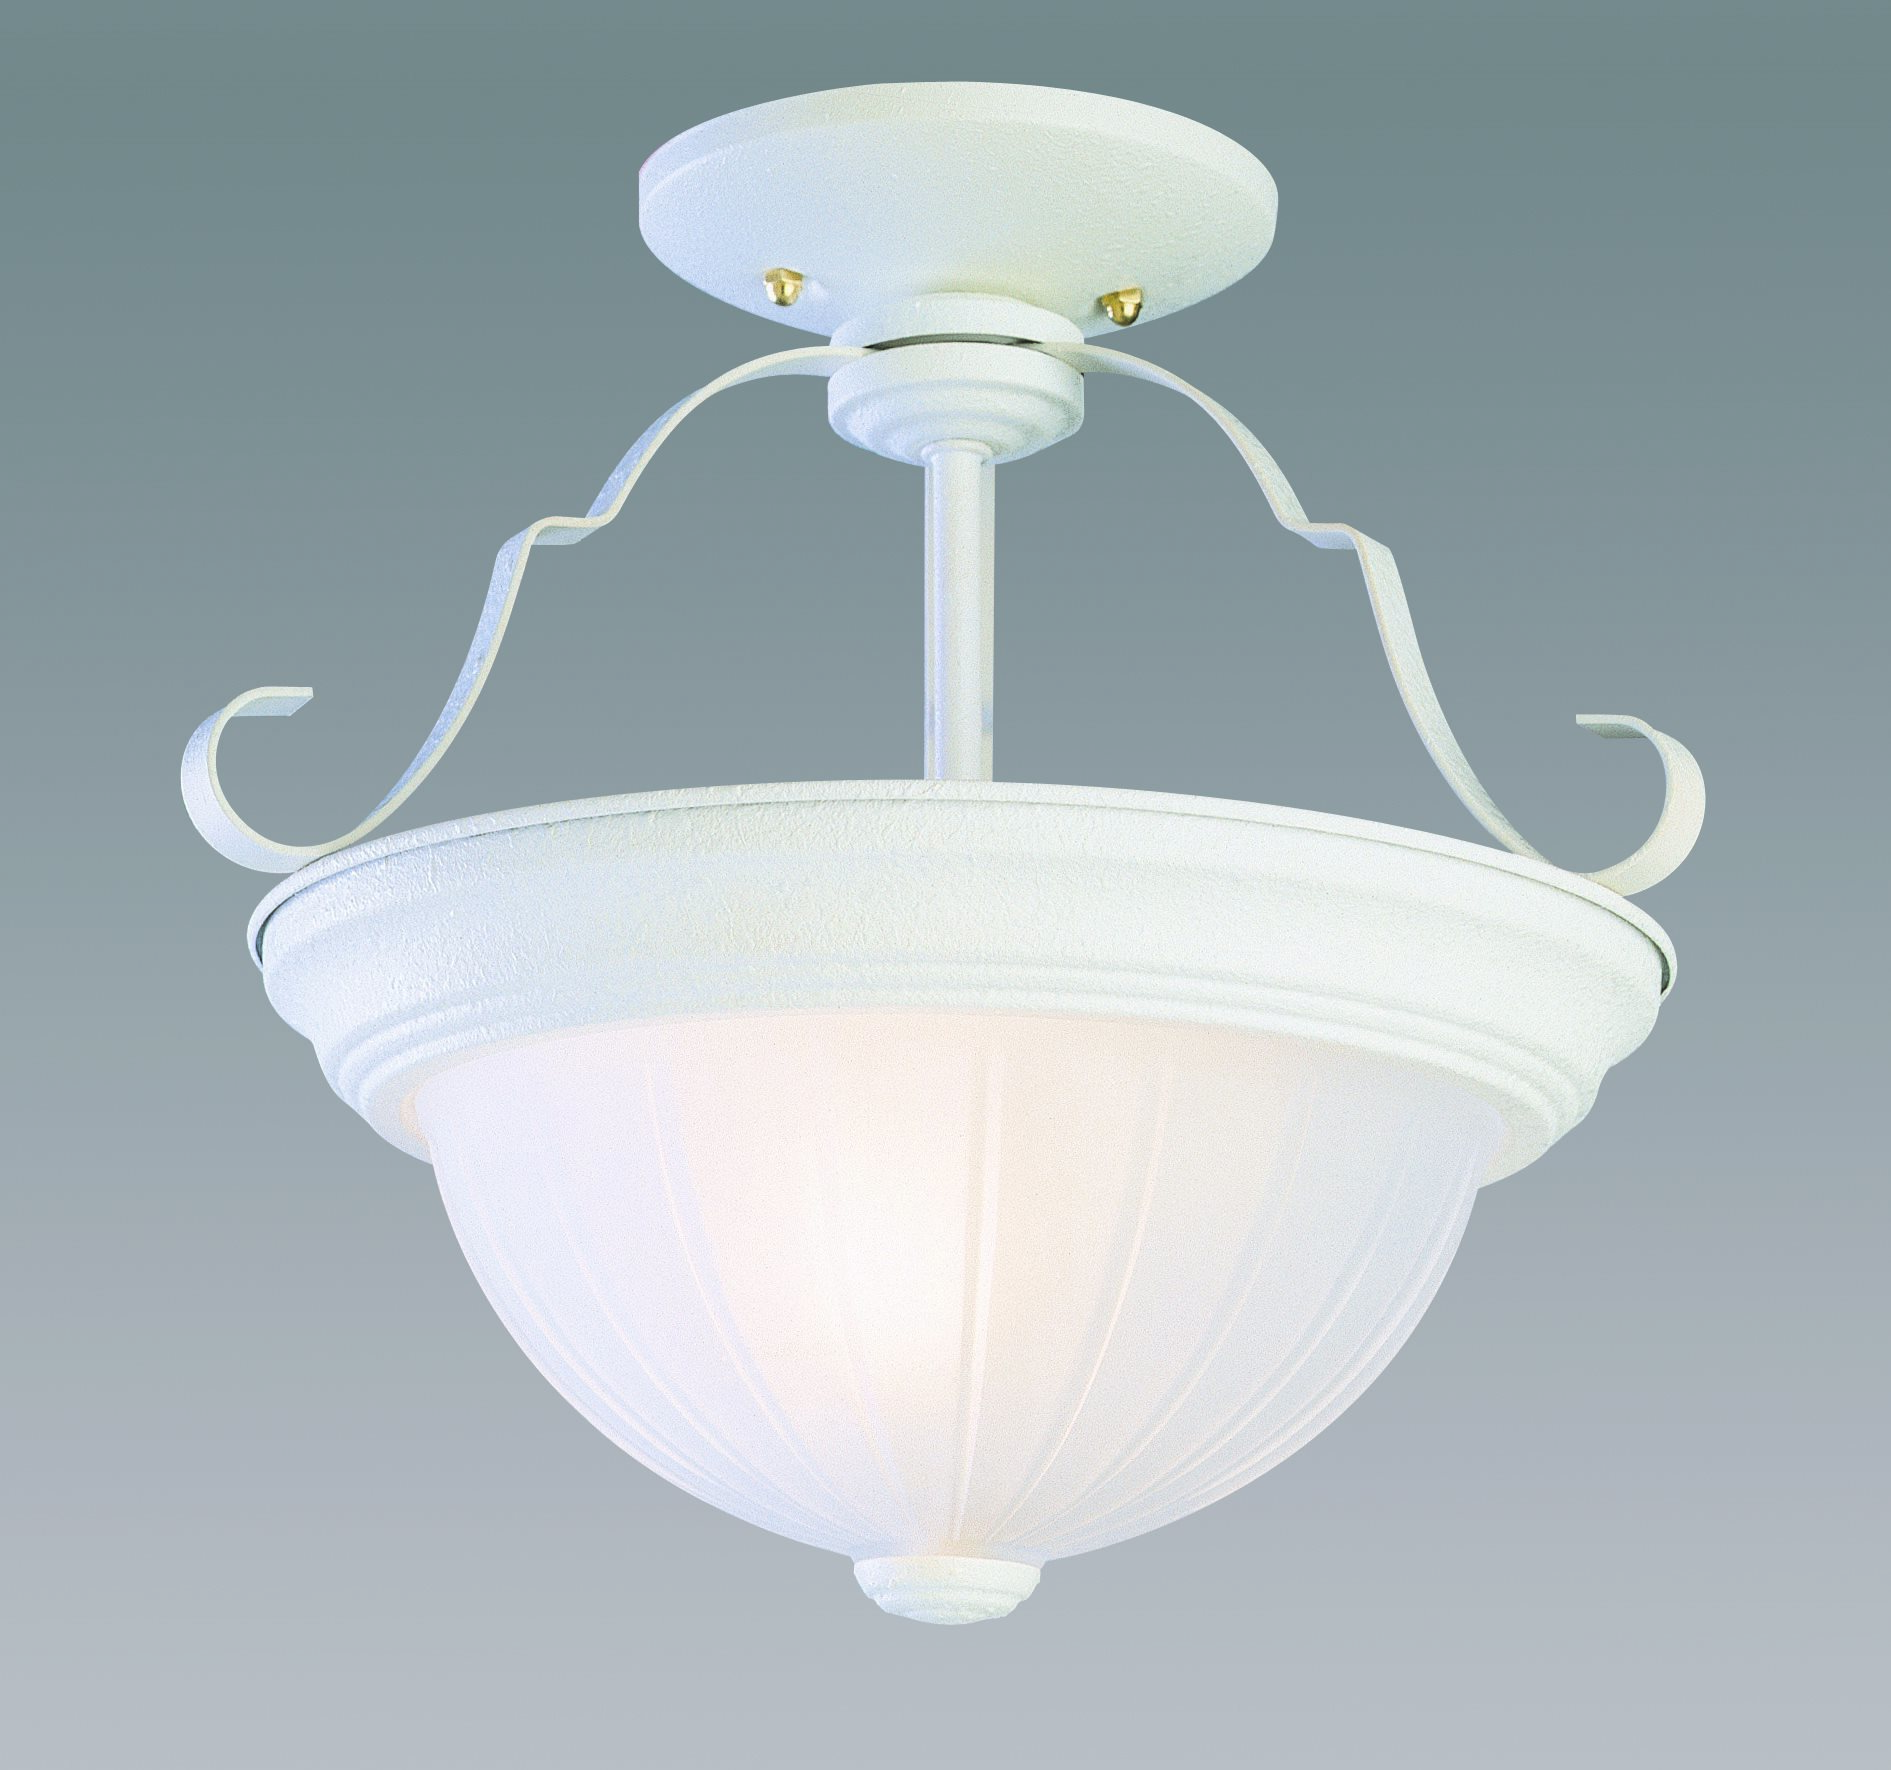 Trans Globe Lighting Pl 13213 Energy Efficient Indoors Transitional Semi Flush Mount Ceiling